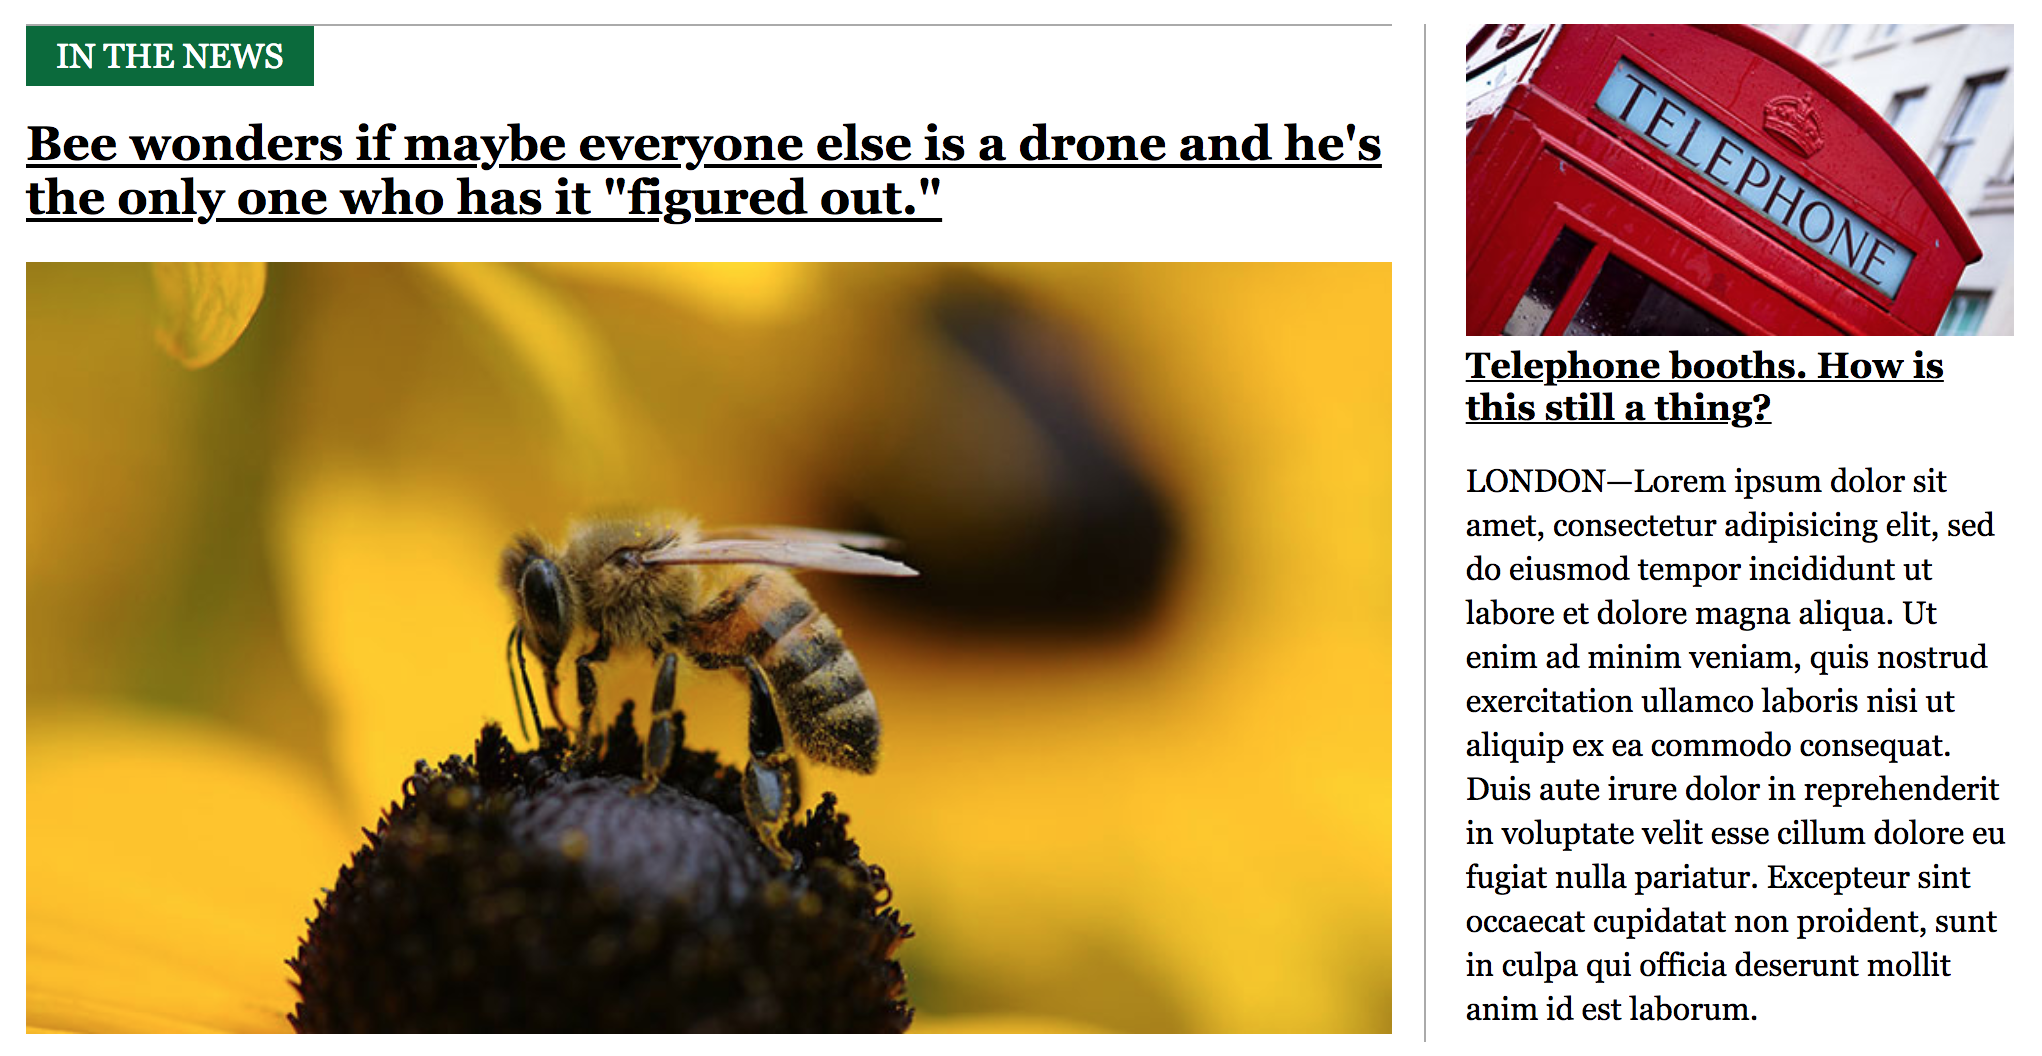 A news site with a headline, hero image, and subsections.